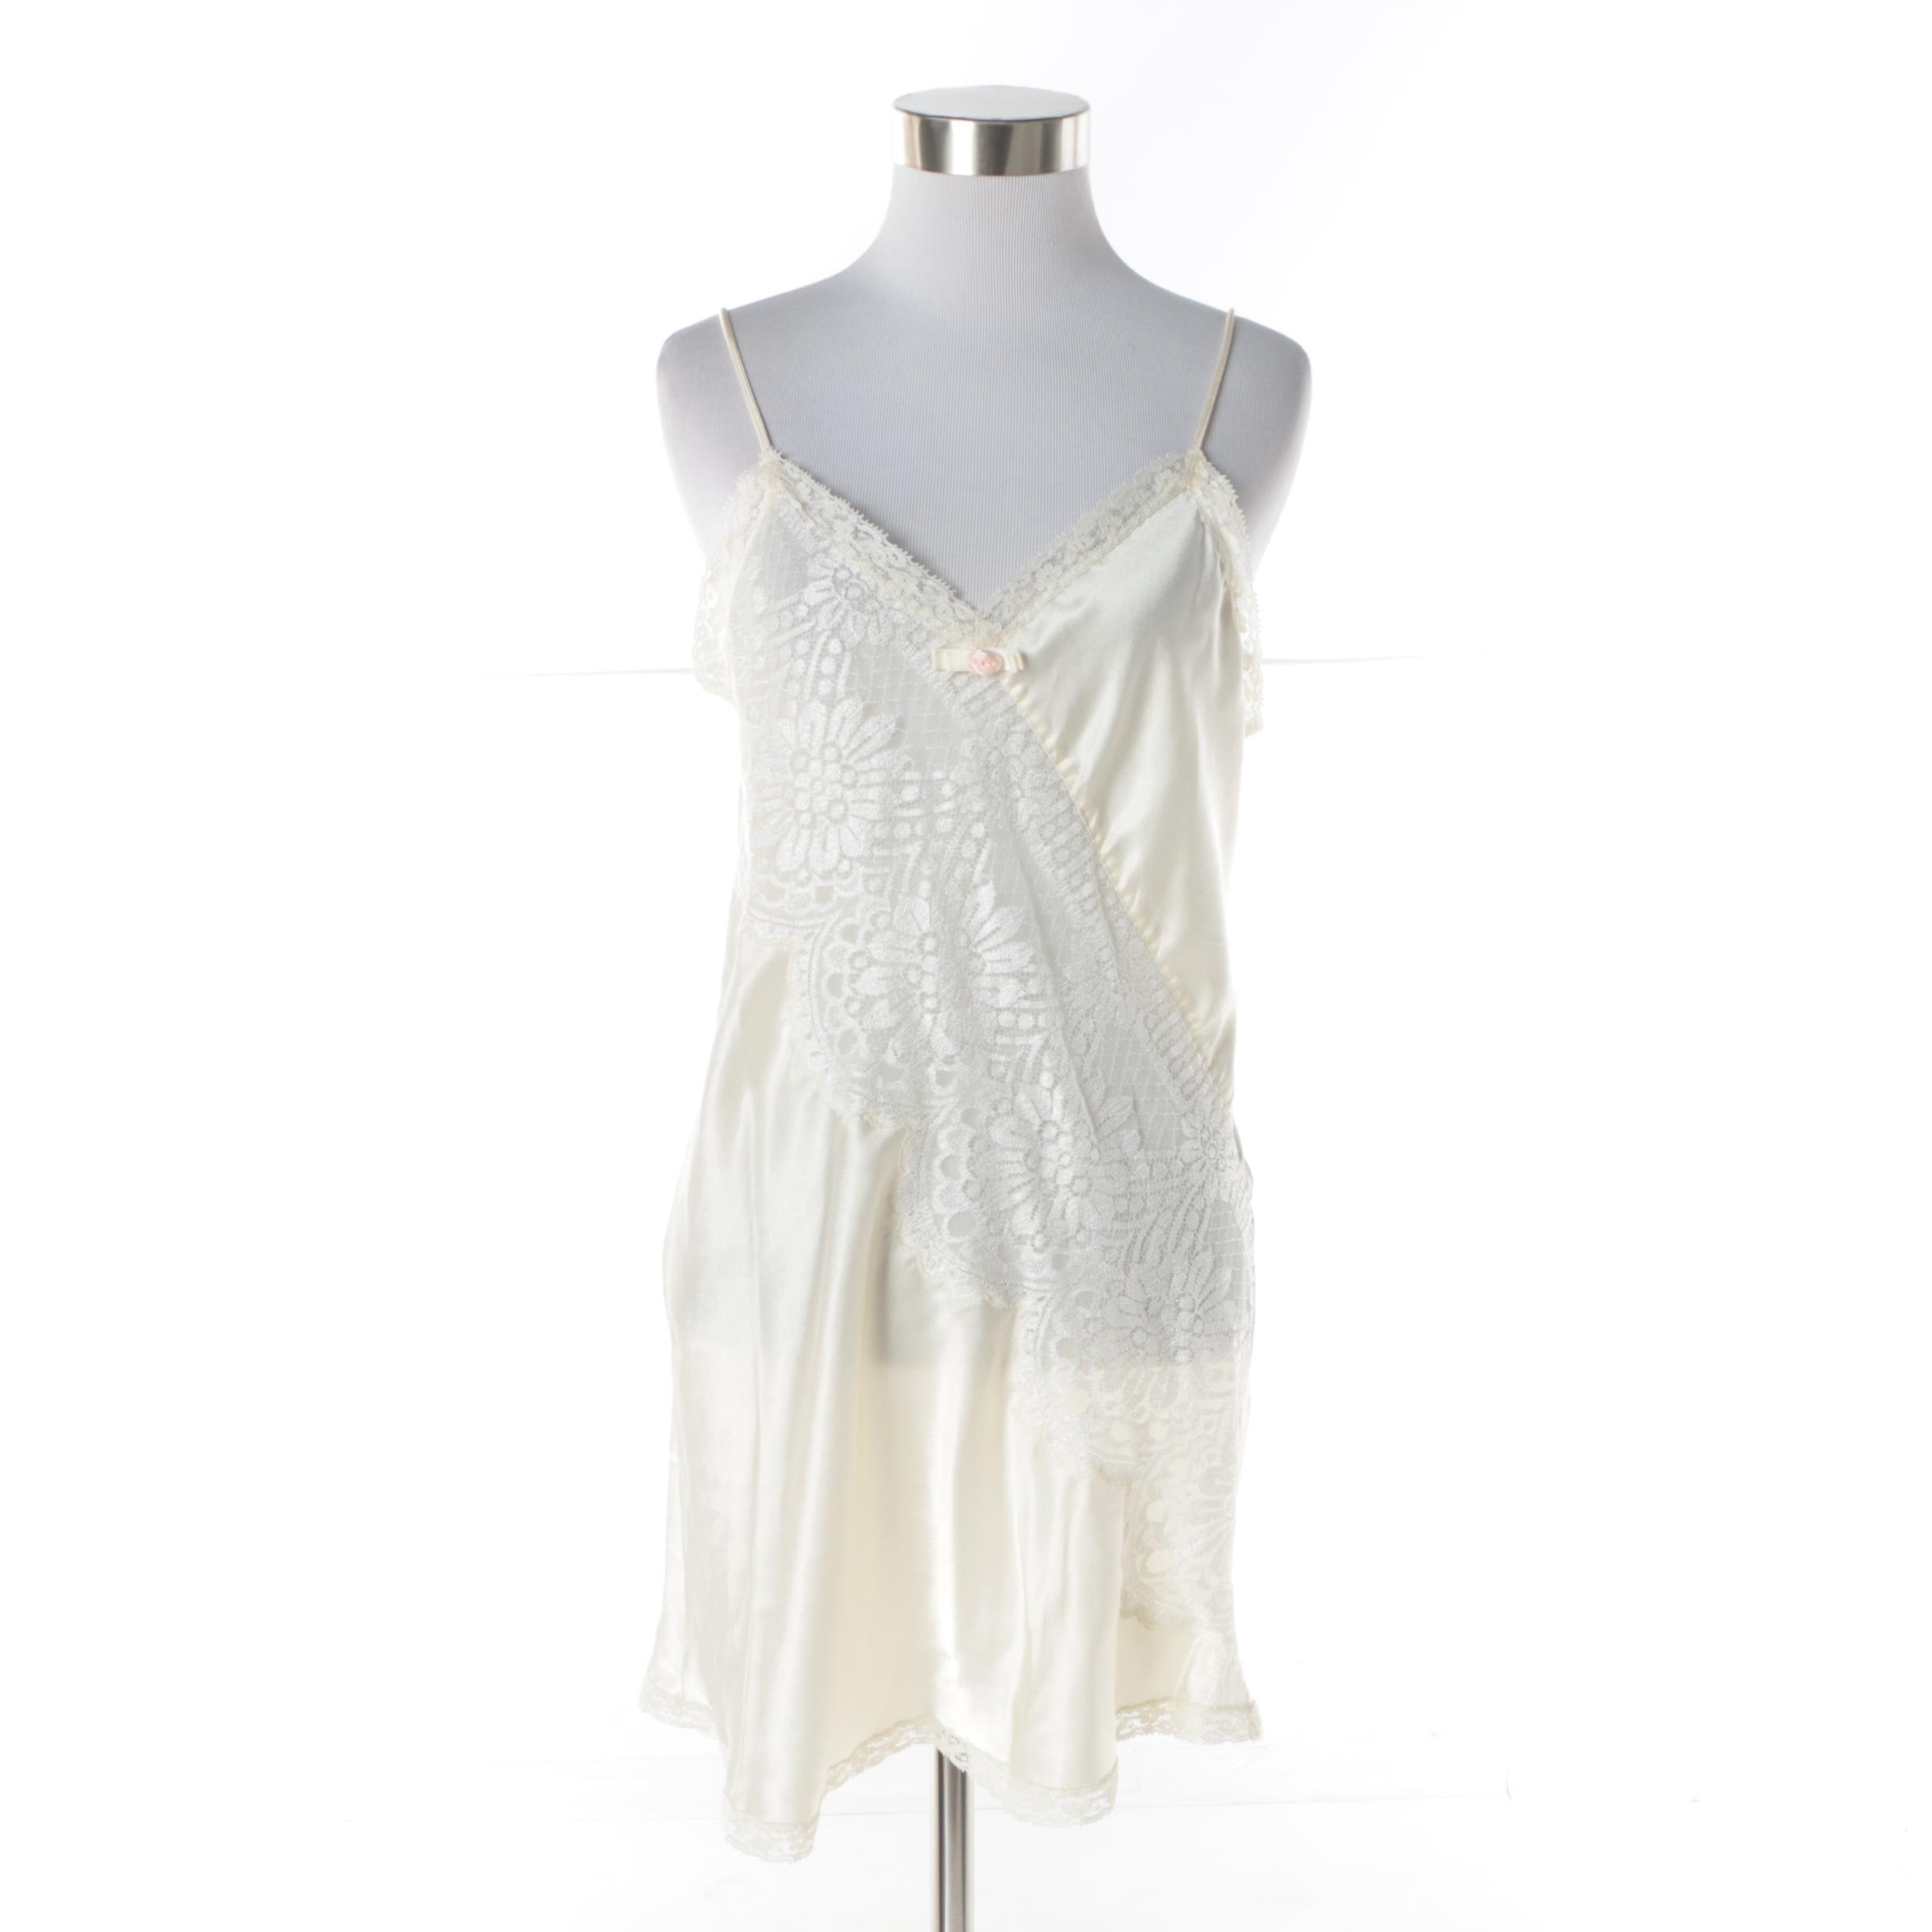 Women's Christian Dior Lingerie Cream Chemise Trimmed in Lace